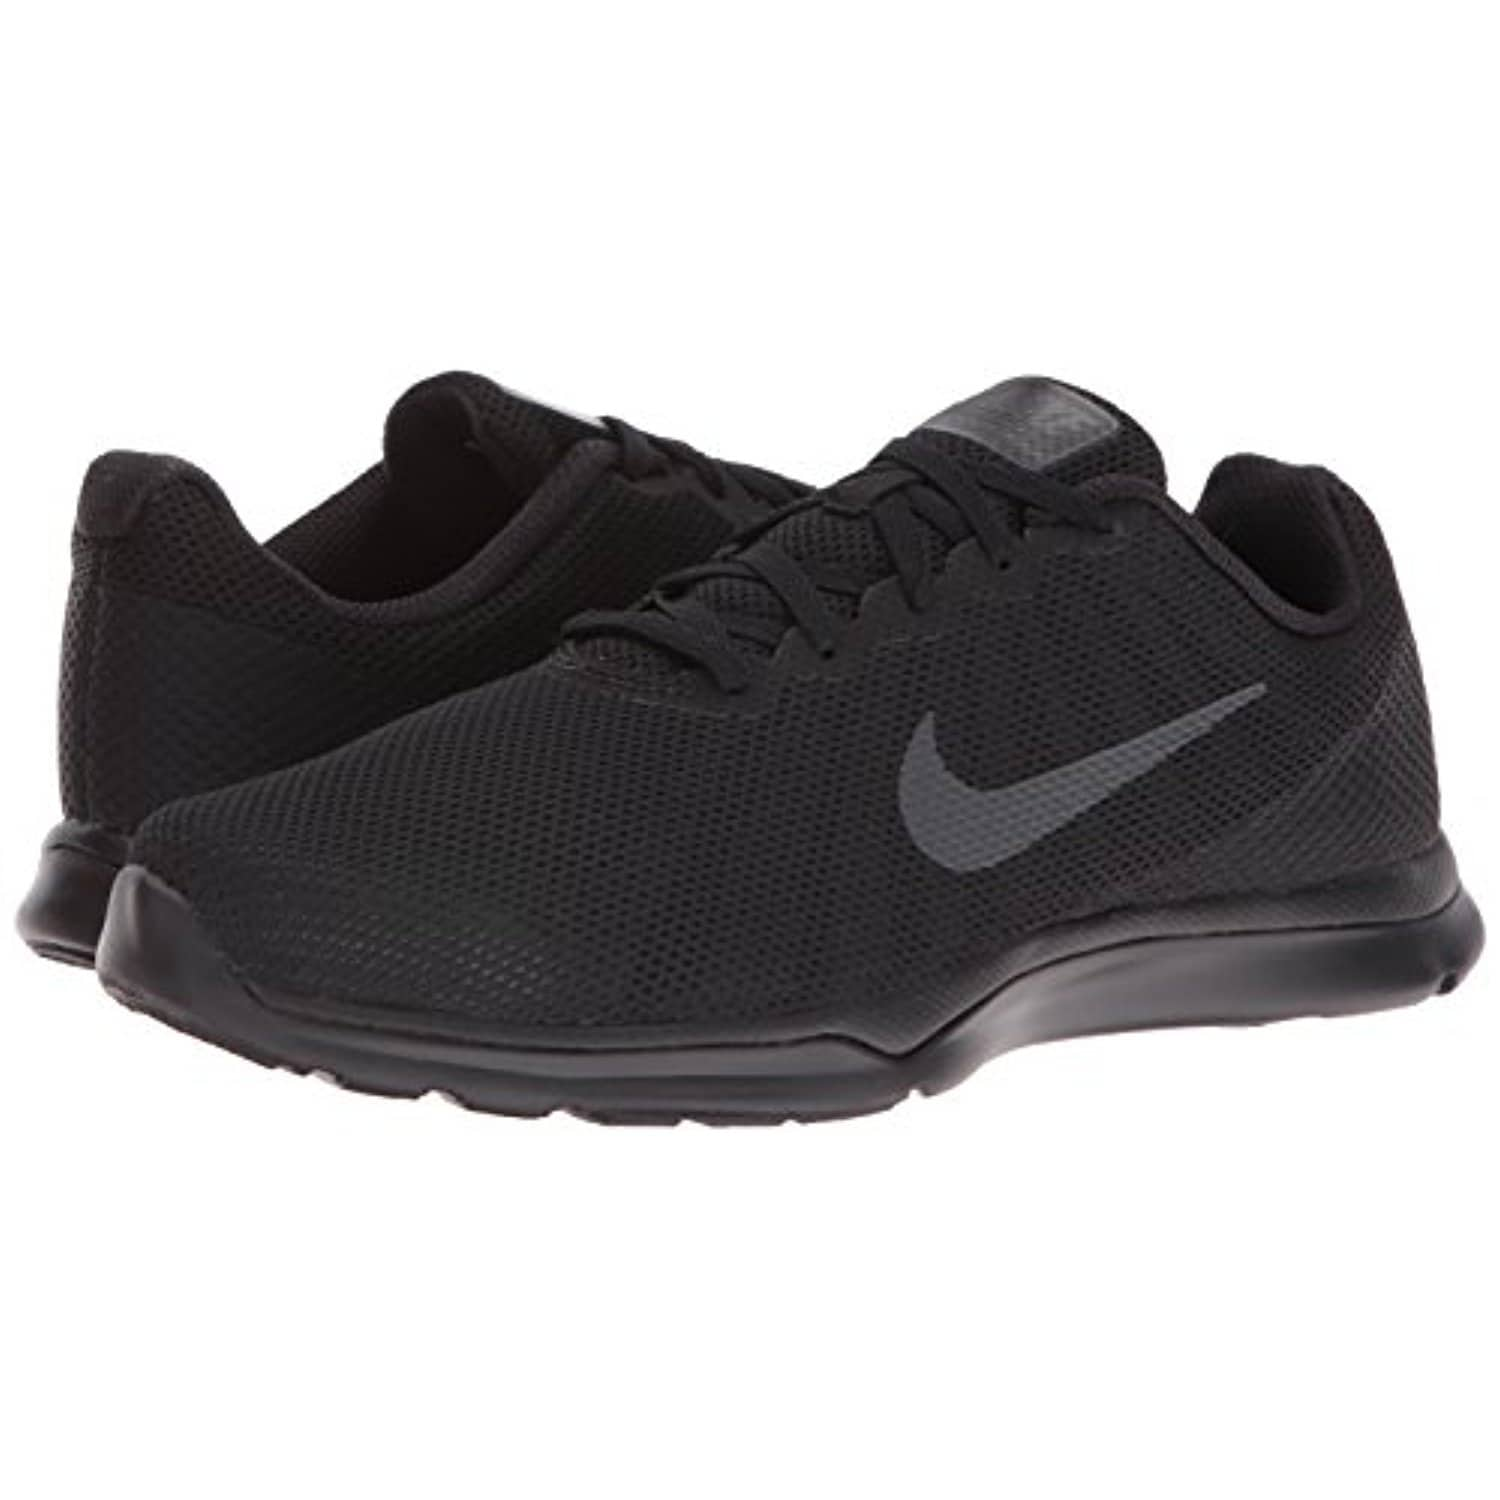 dad1f25c24b47 Shop Nike Women s In-Season TR 6 Cross Training Shoe